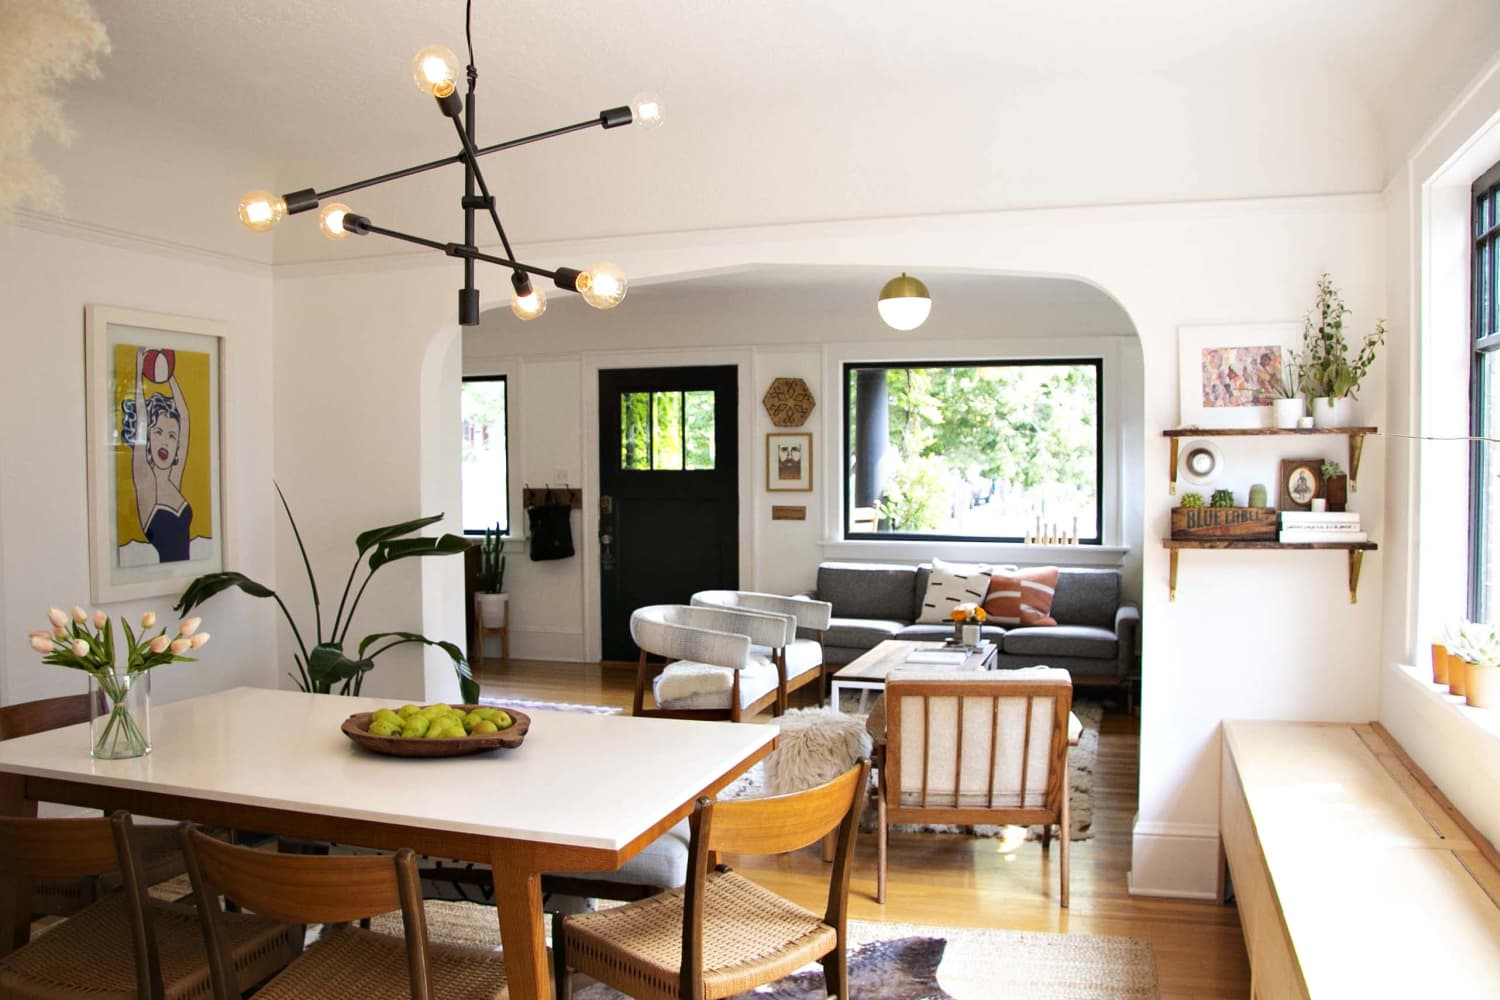 7 of the Best Places to Buy Lighting Online